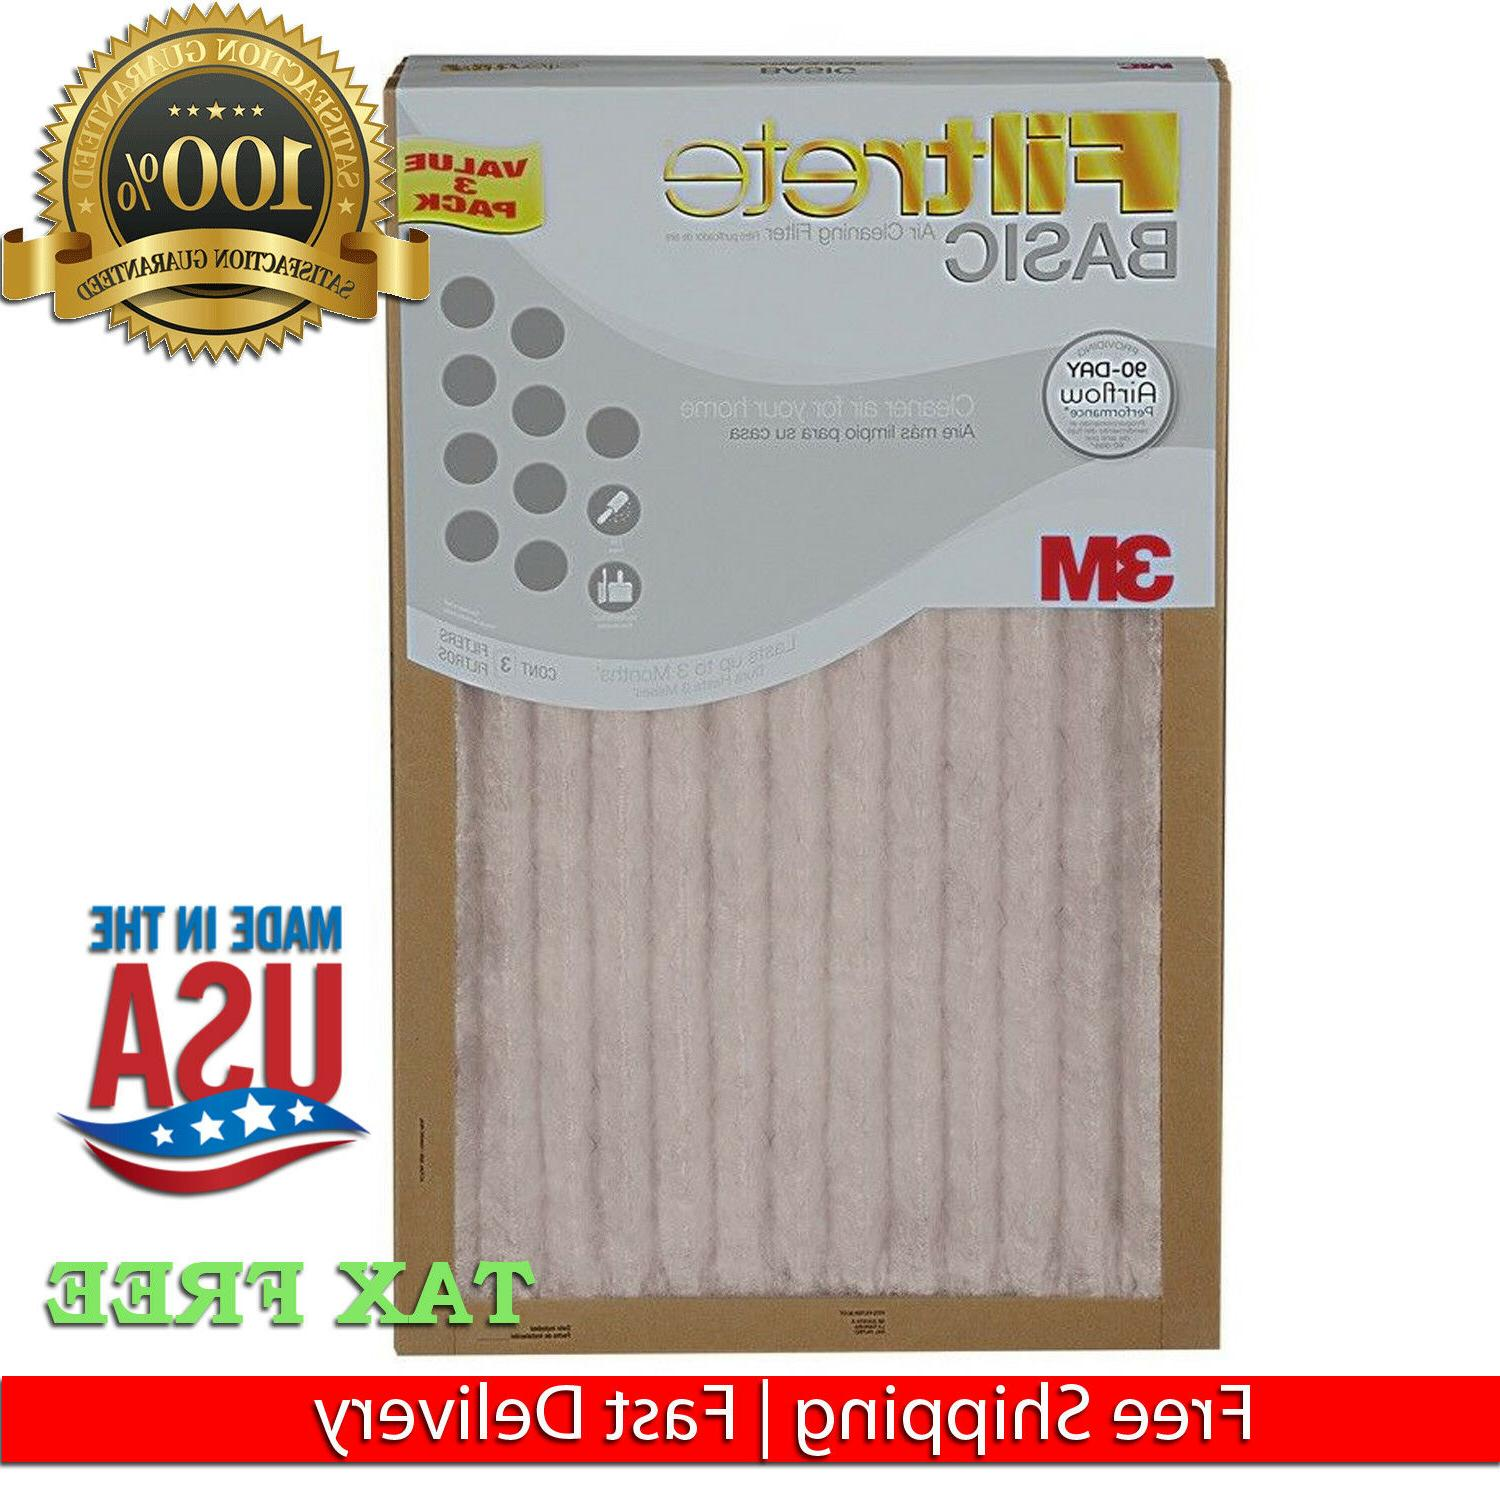 374444FILTRETE 3M AIR FURNACE FILTER WHITE PLEATED 3 PK OR 1